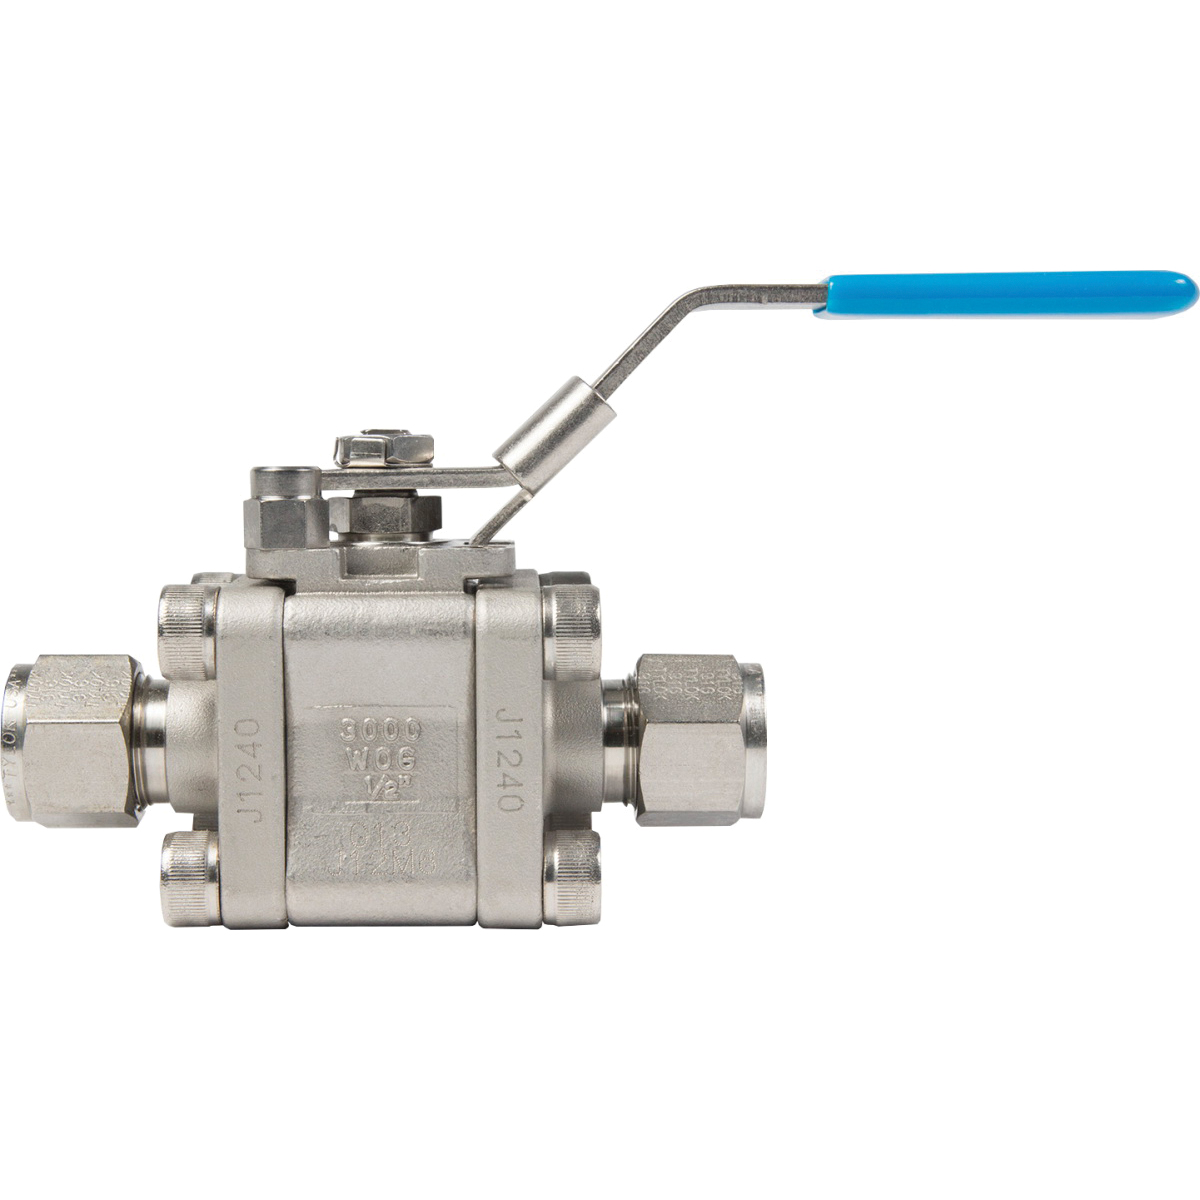 Tylok® TY-FLO® SS-12-5TT-12-RR Stainless Steel 3-Piece Ball Valve, 3/4 in, Tube, 3000 psig, 500 deg F